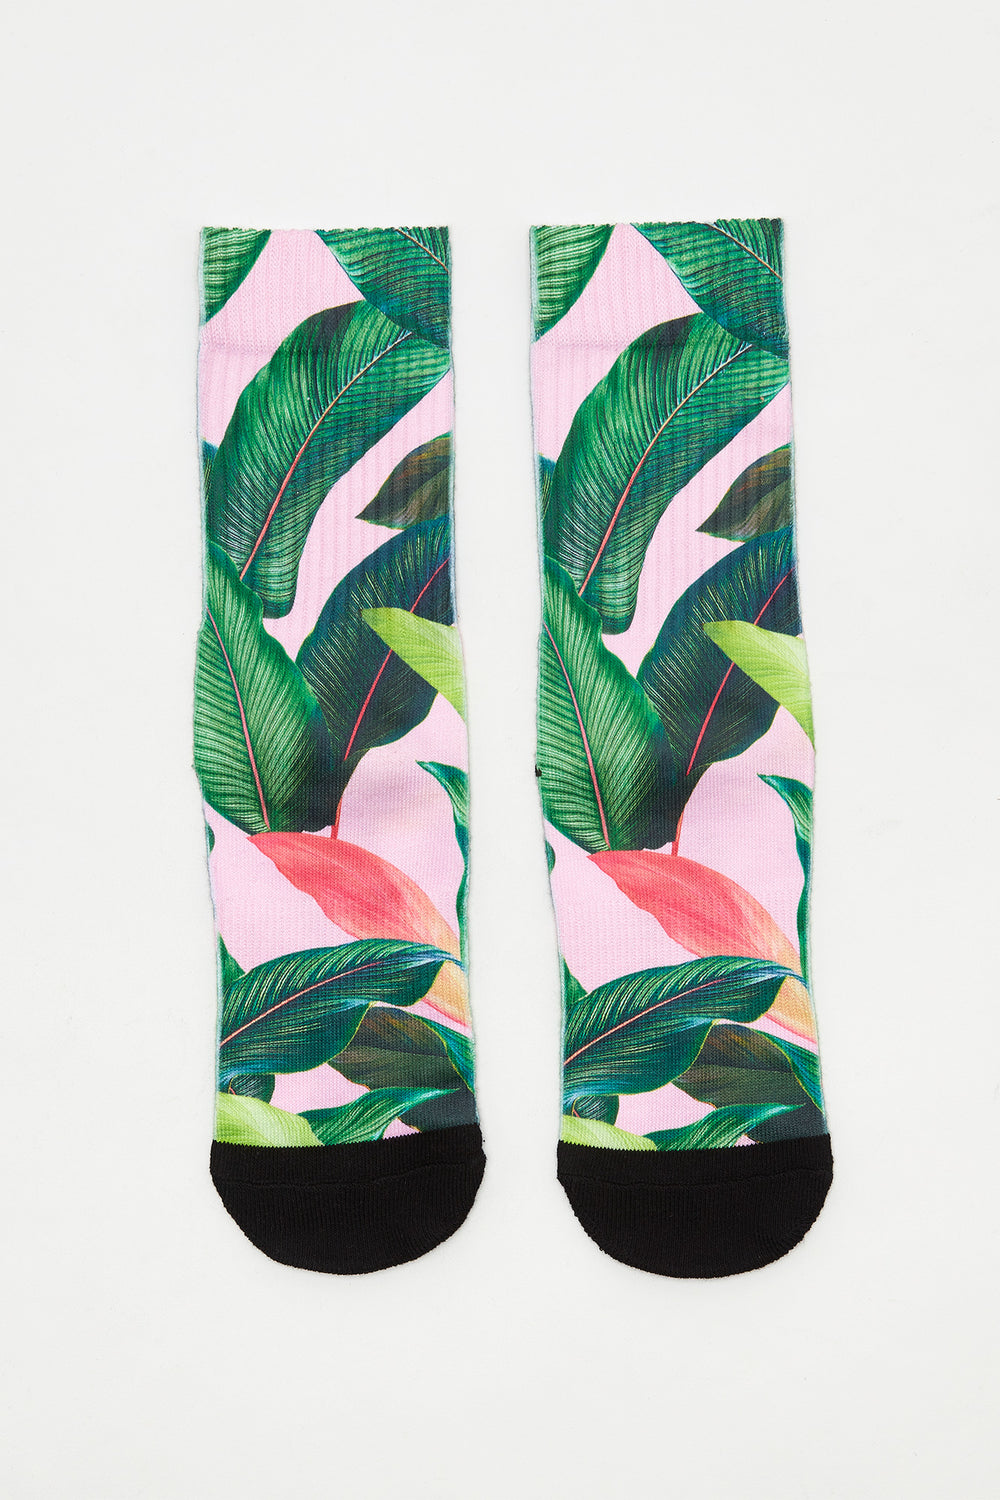 Chaussettes Tropicales Zoo York Femme Multi